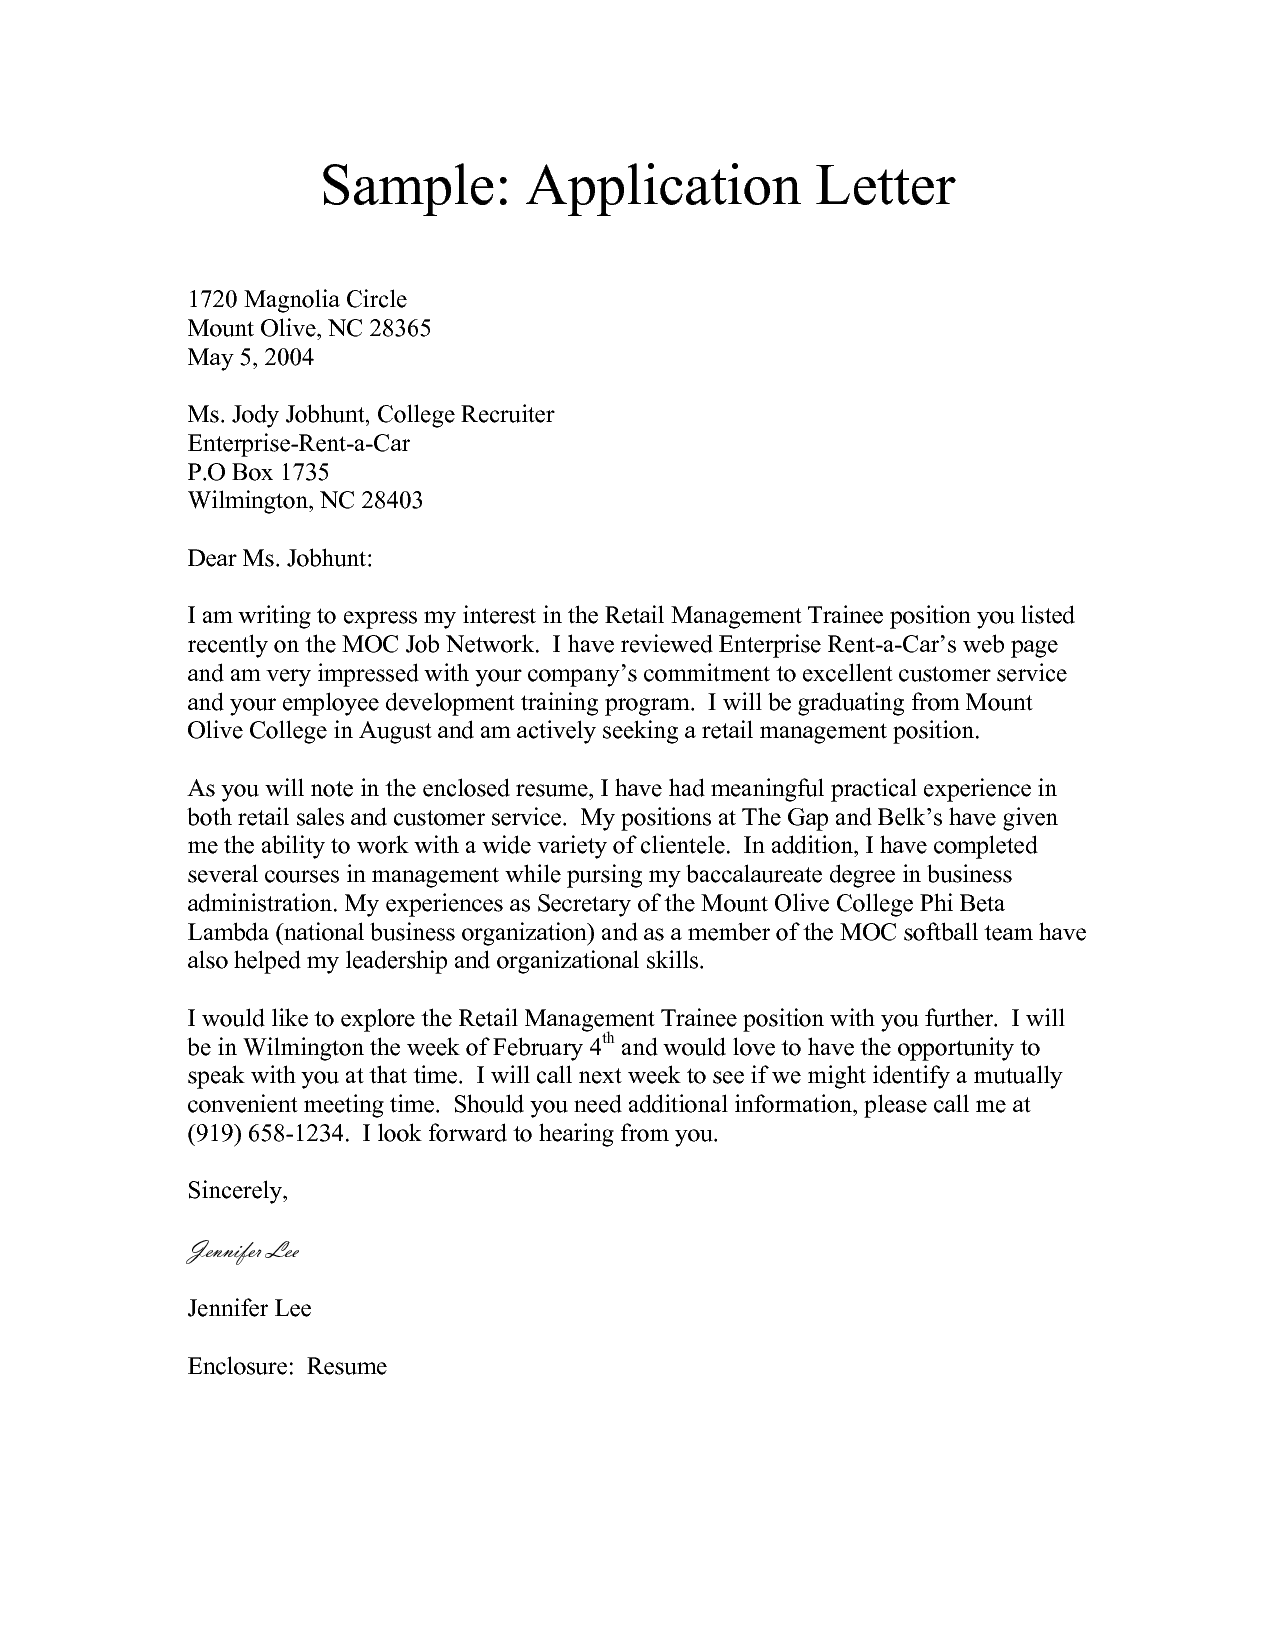 Application letter use these samples for fresh sample format application letter pdf format resignation with notice job international resume picture best free home design idea inspiration madrichimfo Choice Image